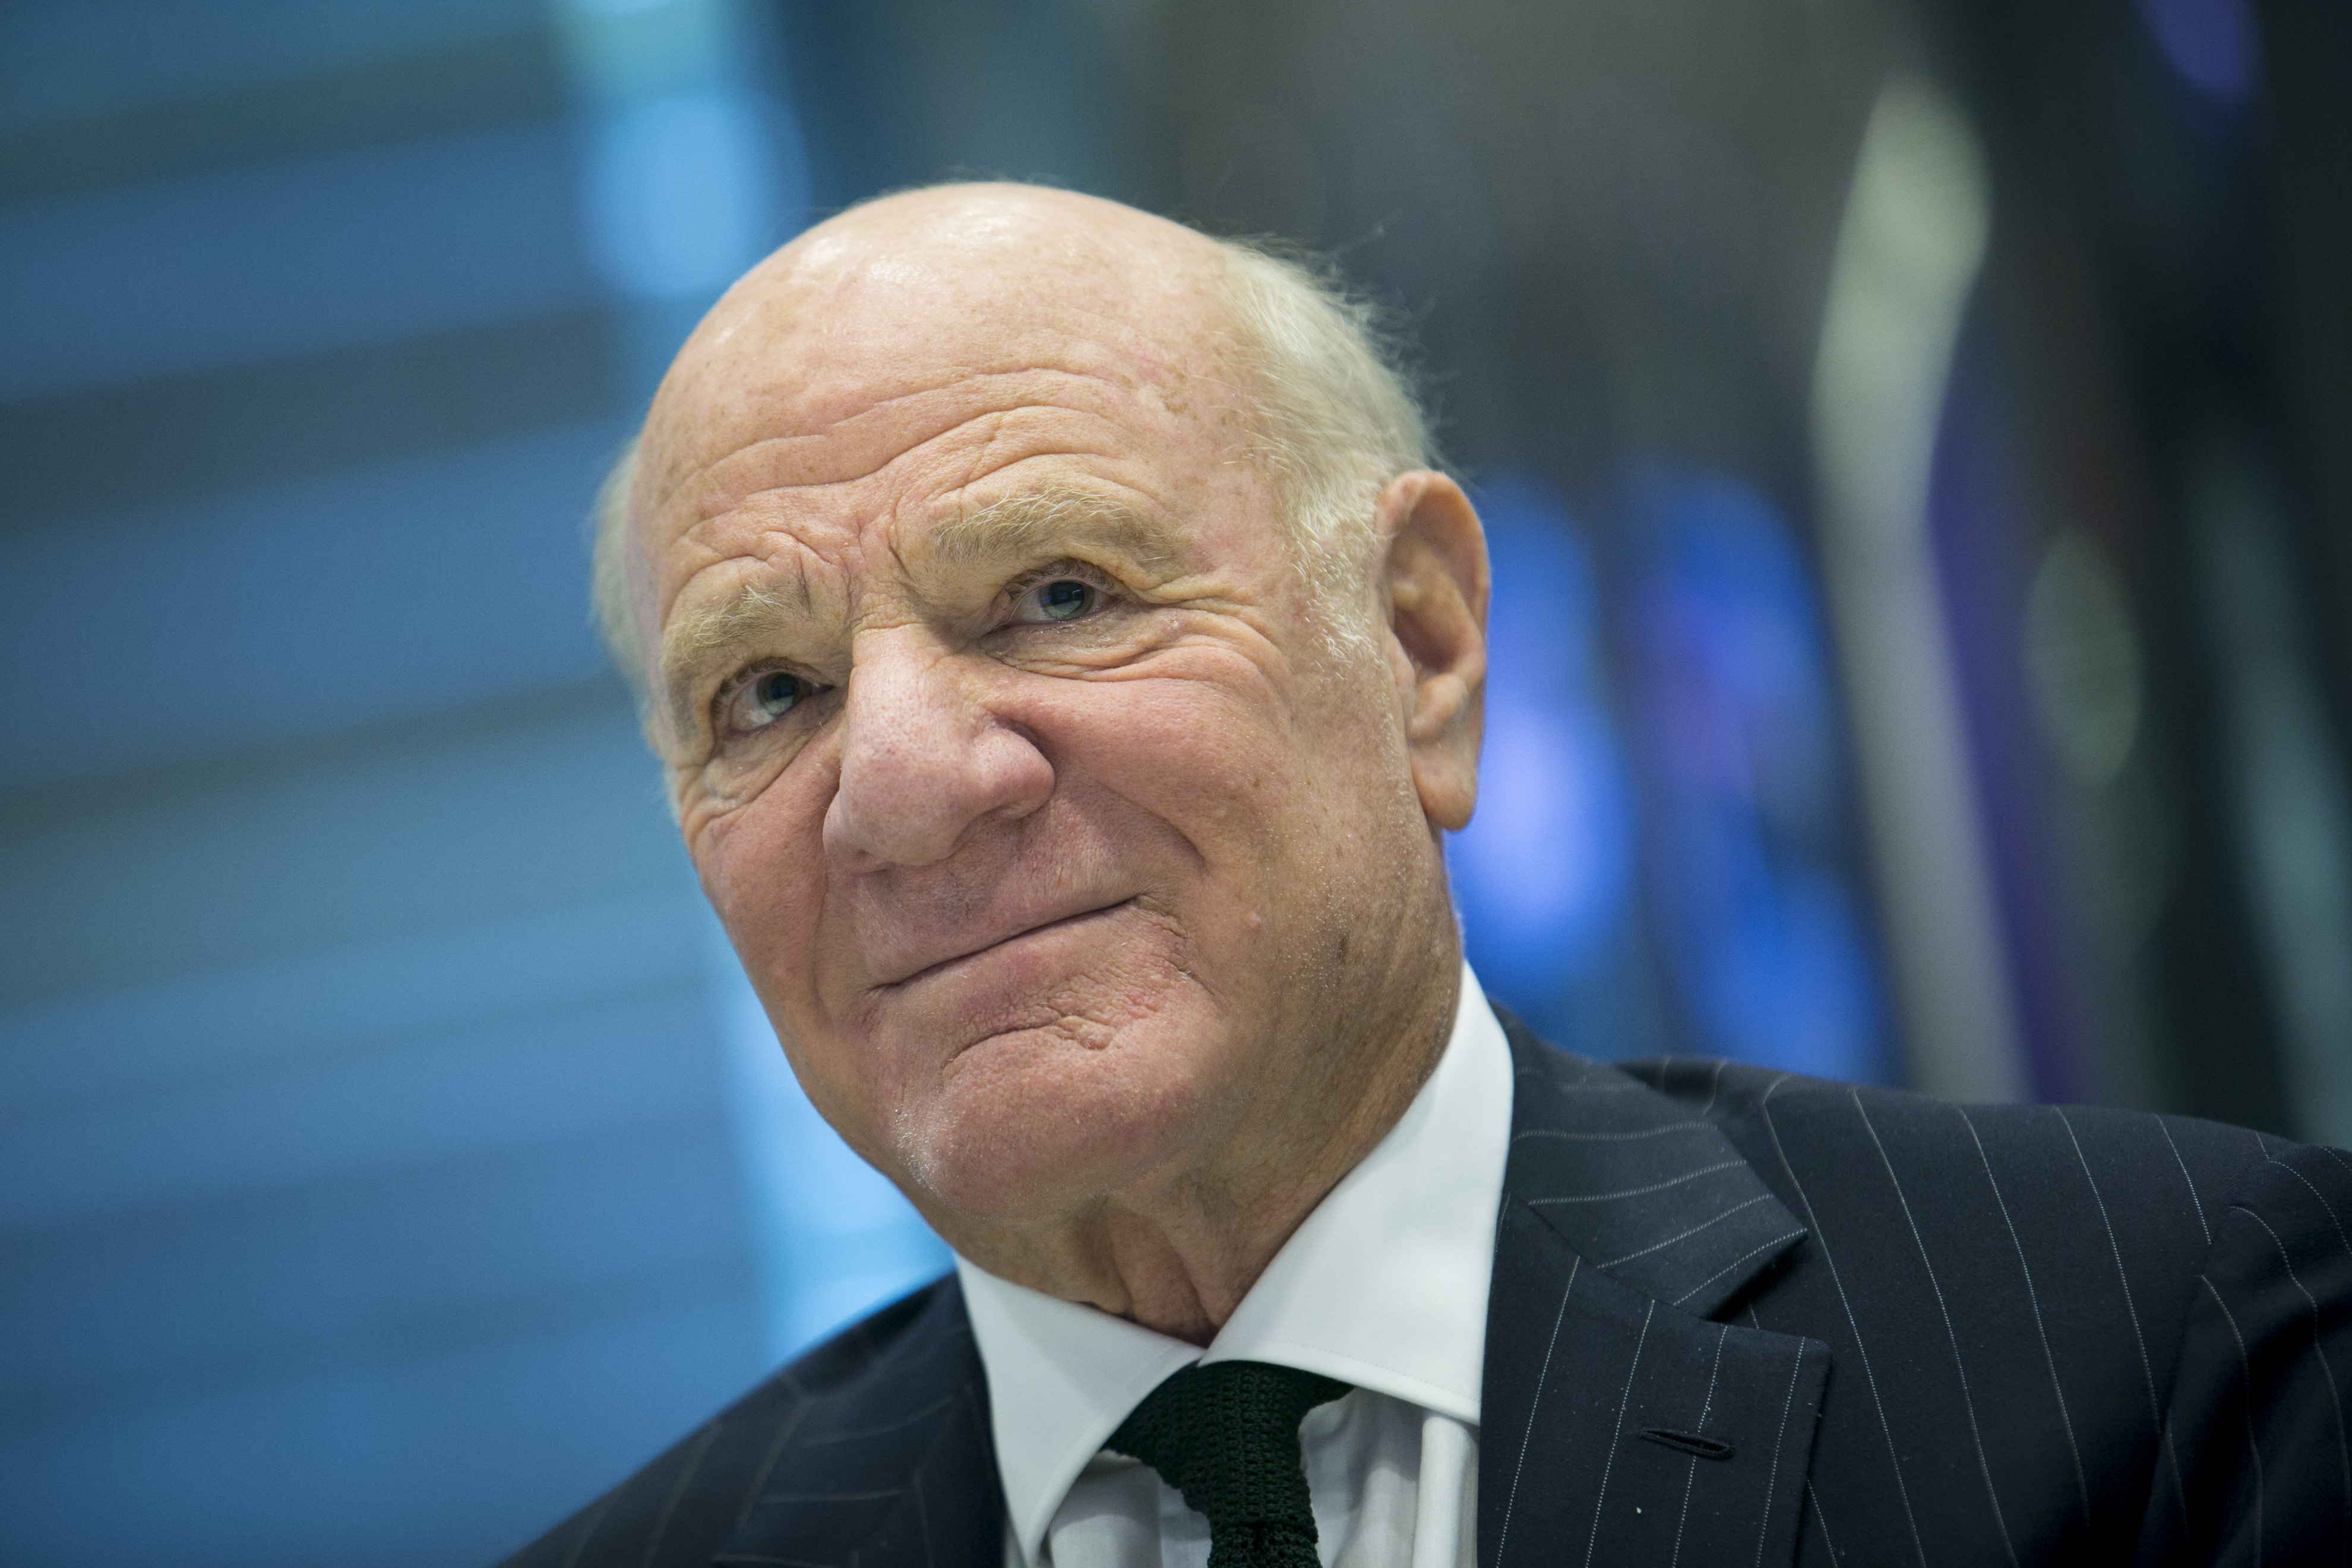 Barry Diller, chairman and chief executive officer of IAC, pauses during an interview in New York City on April 1, 2014